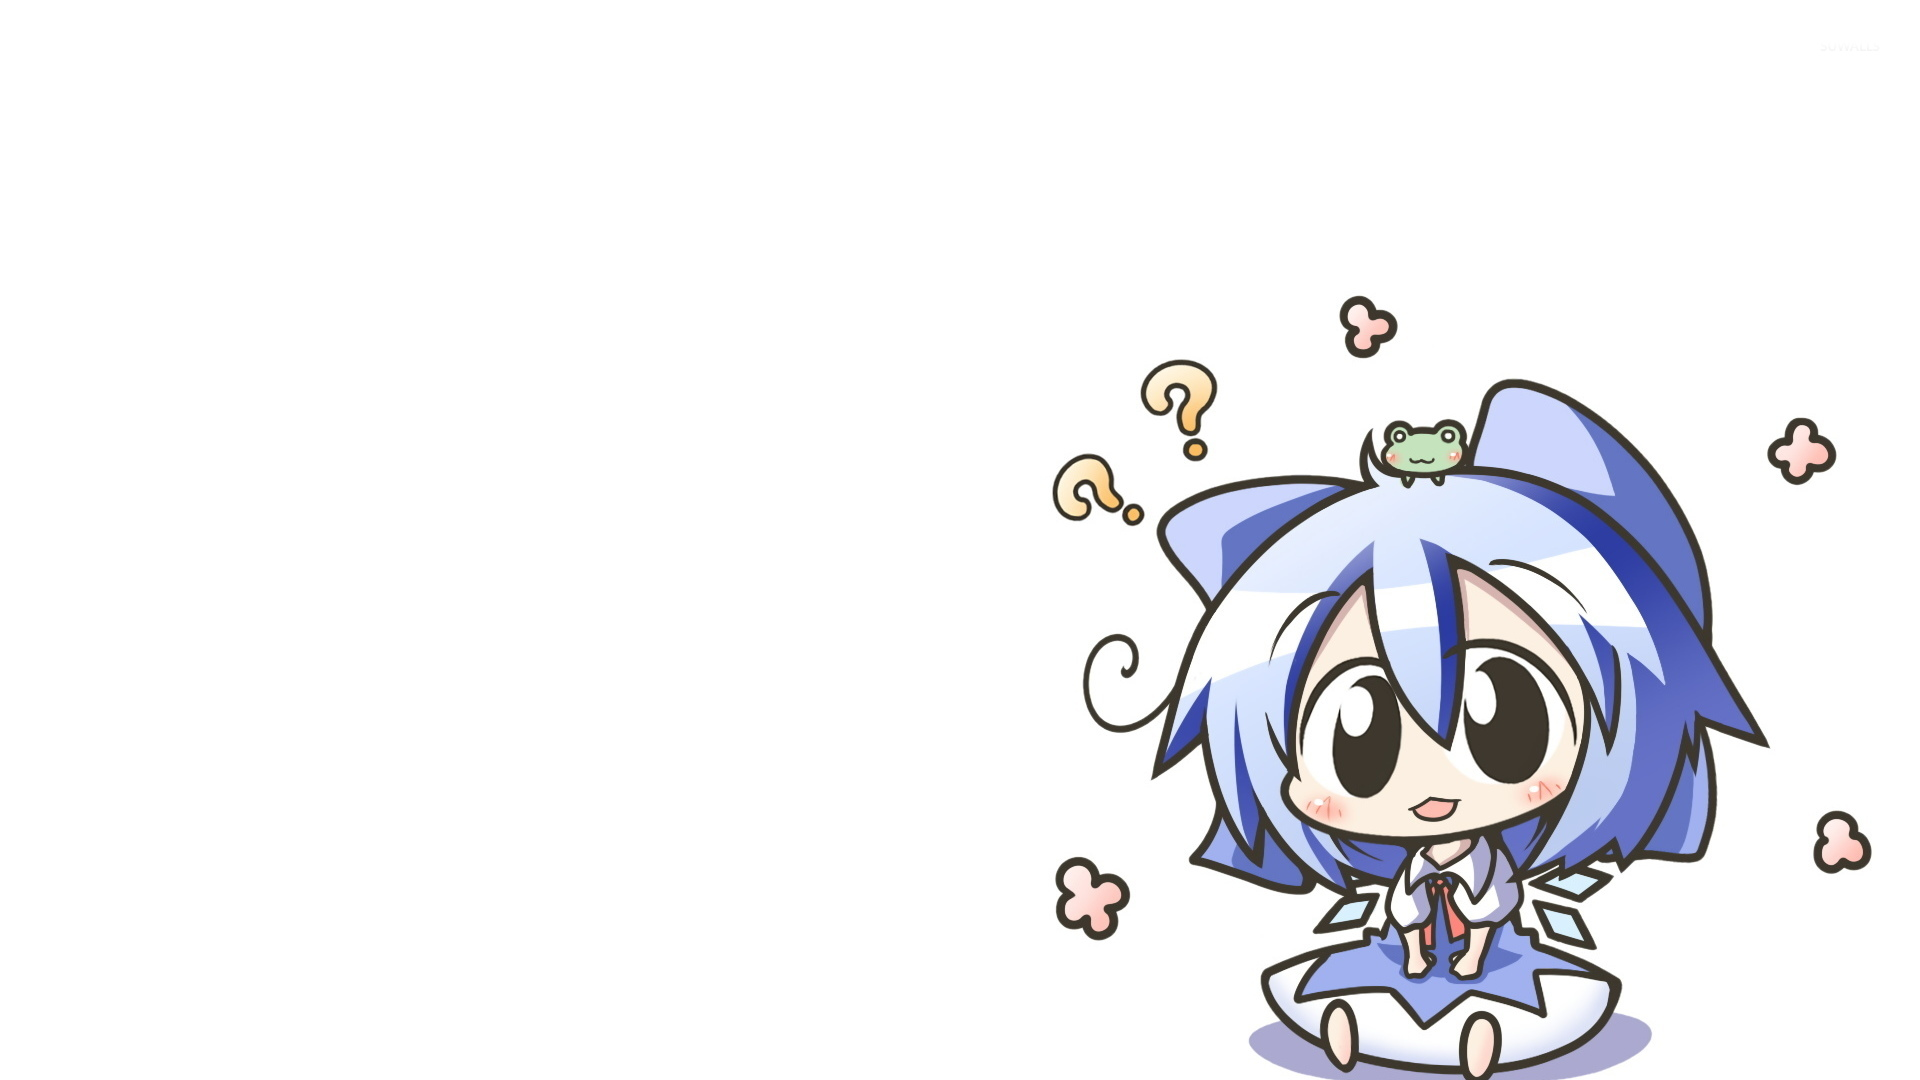 cirno touhou project 6 wallpaper anime wallpapers